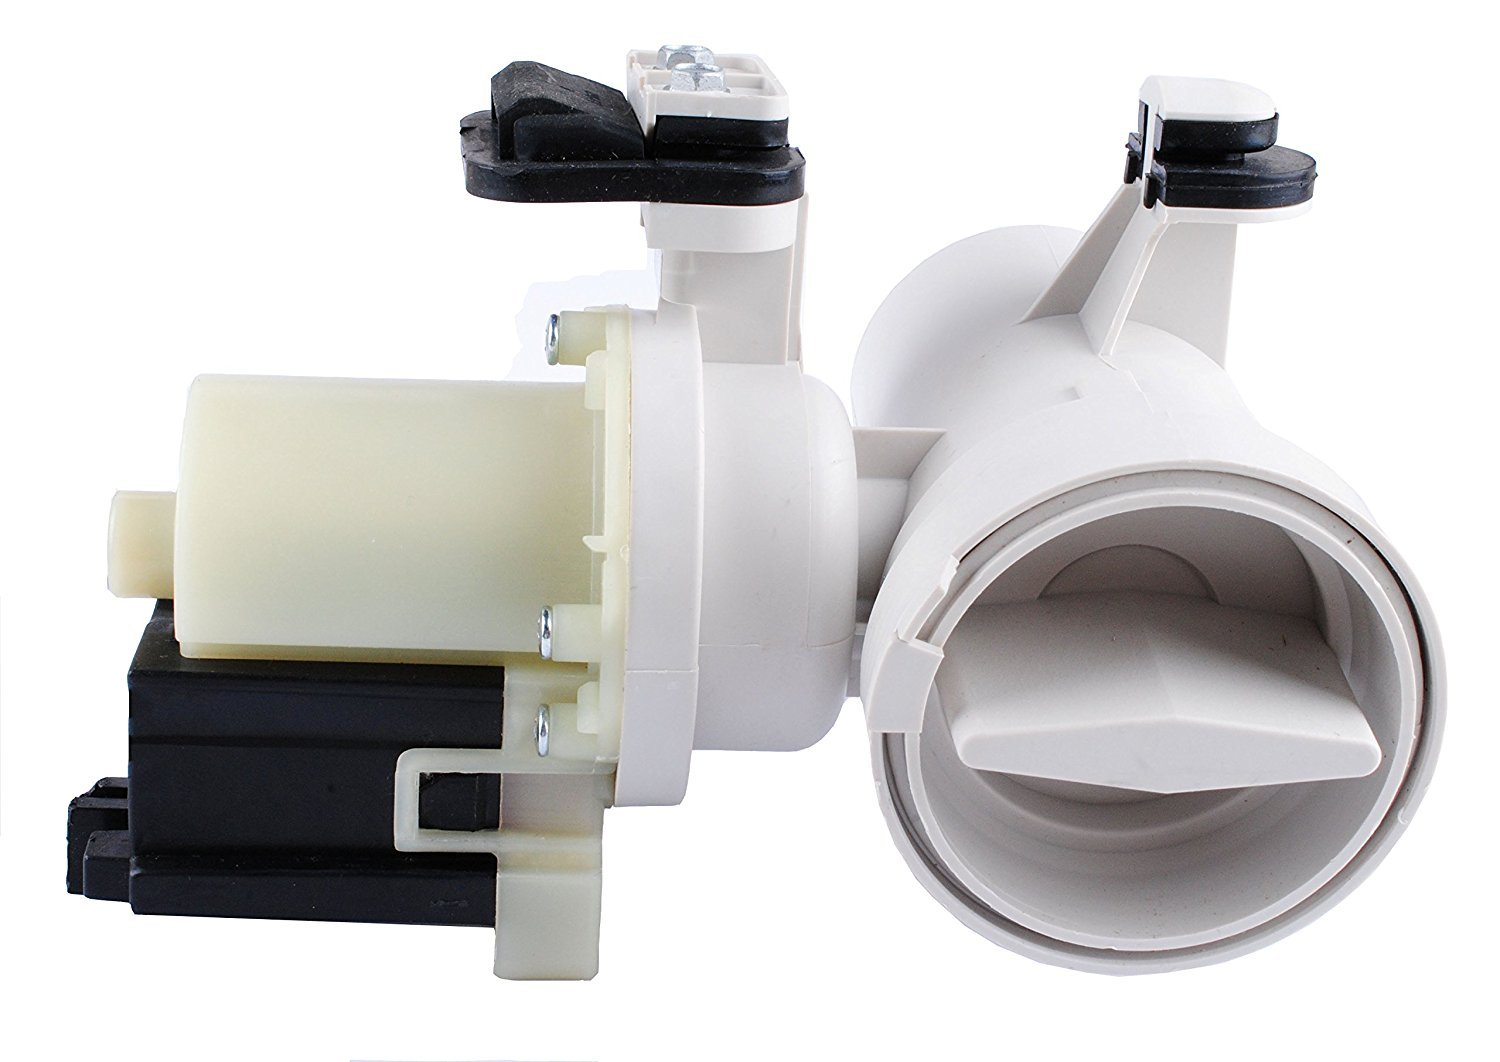 Ximoon Replacement Drain Pump for Whirlpool W10130913, 850024, W10117829, PS1960402 Model: SN15, Tools & Hardware store